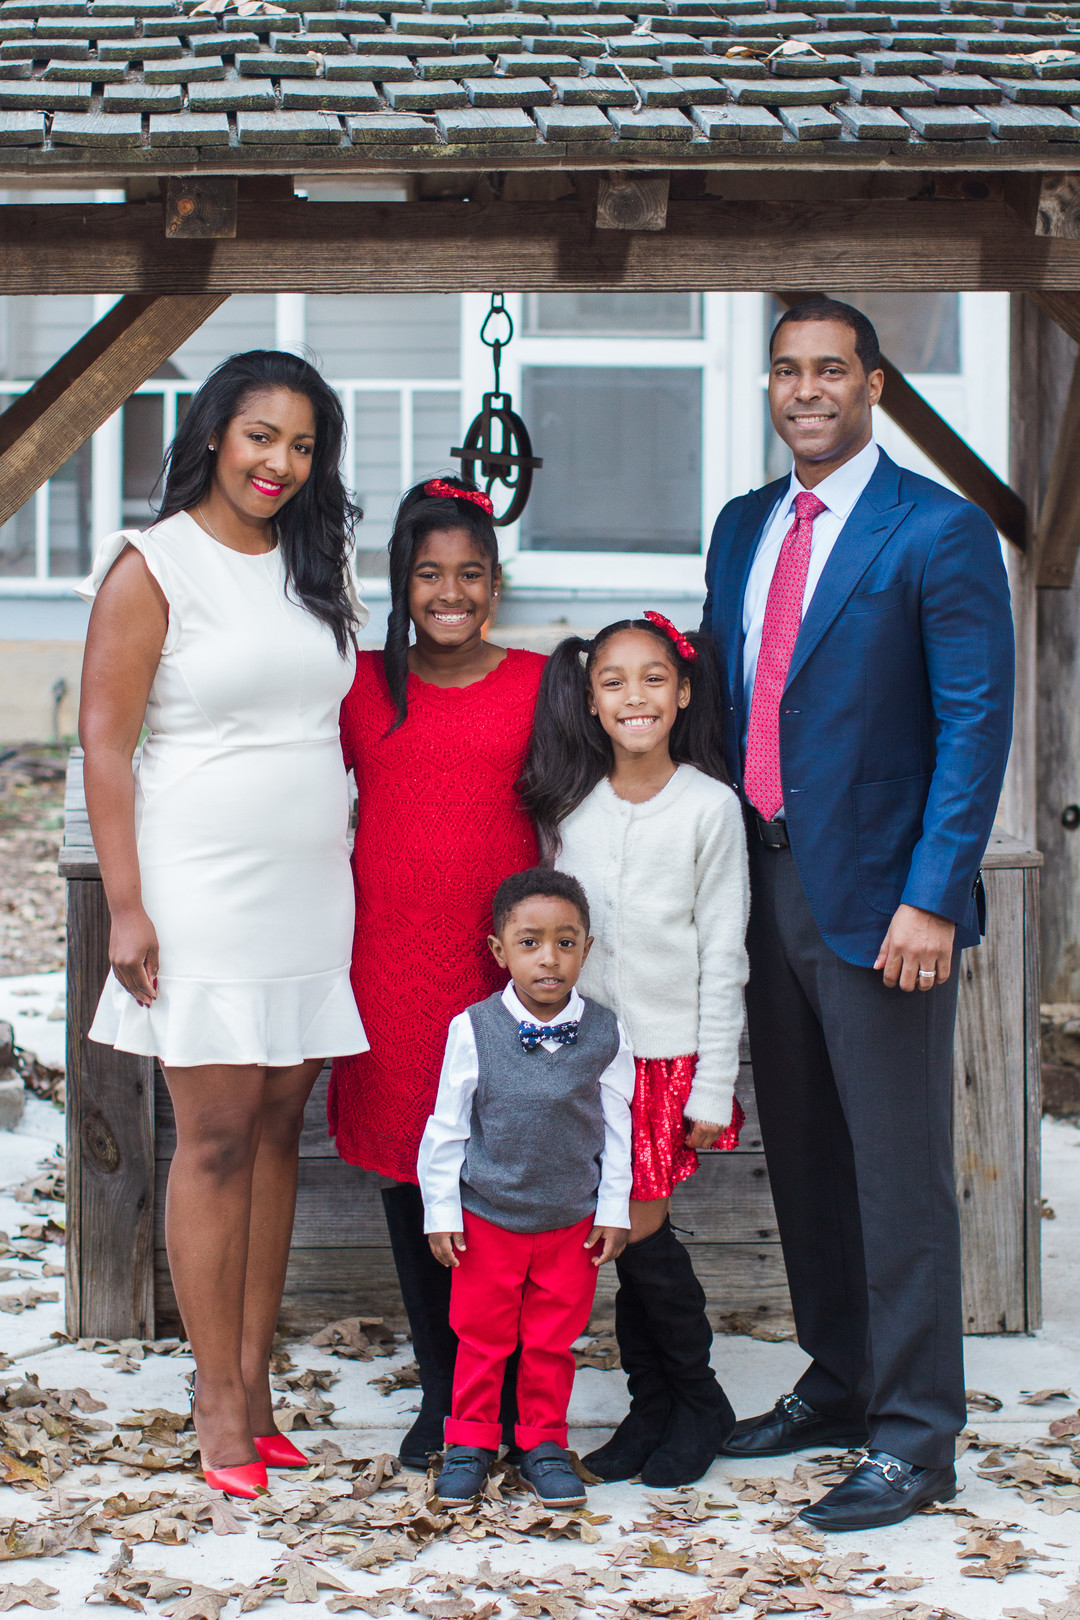 bvtvf276b9a5k65jao70_big Farmhouse Christmas Family Fun in Atlanta, GA